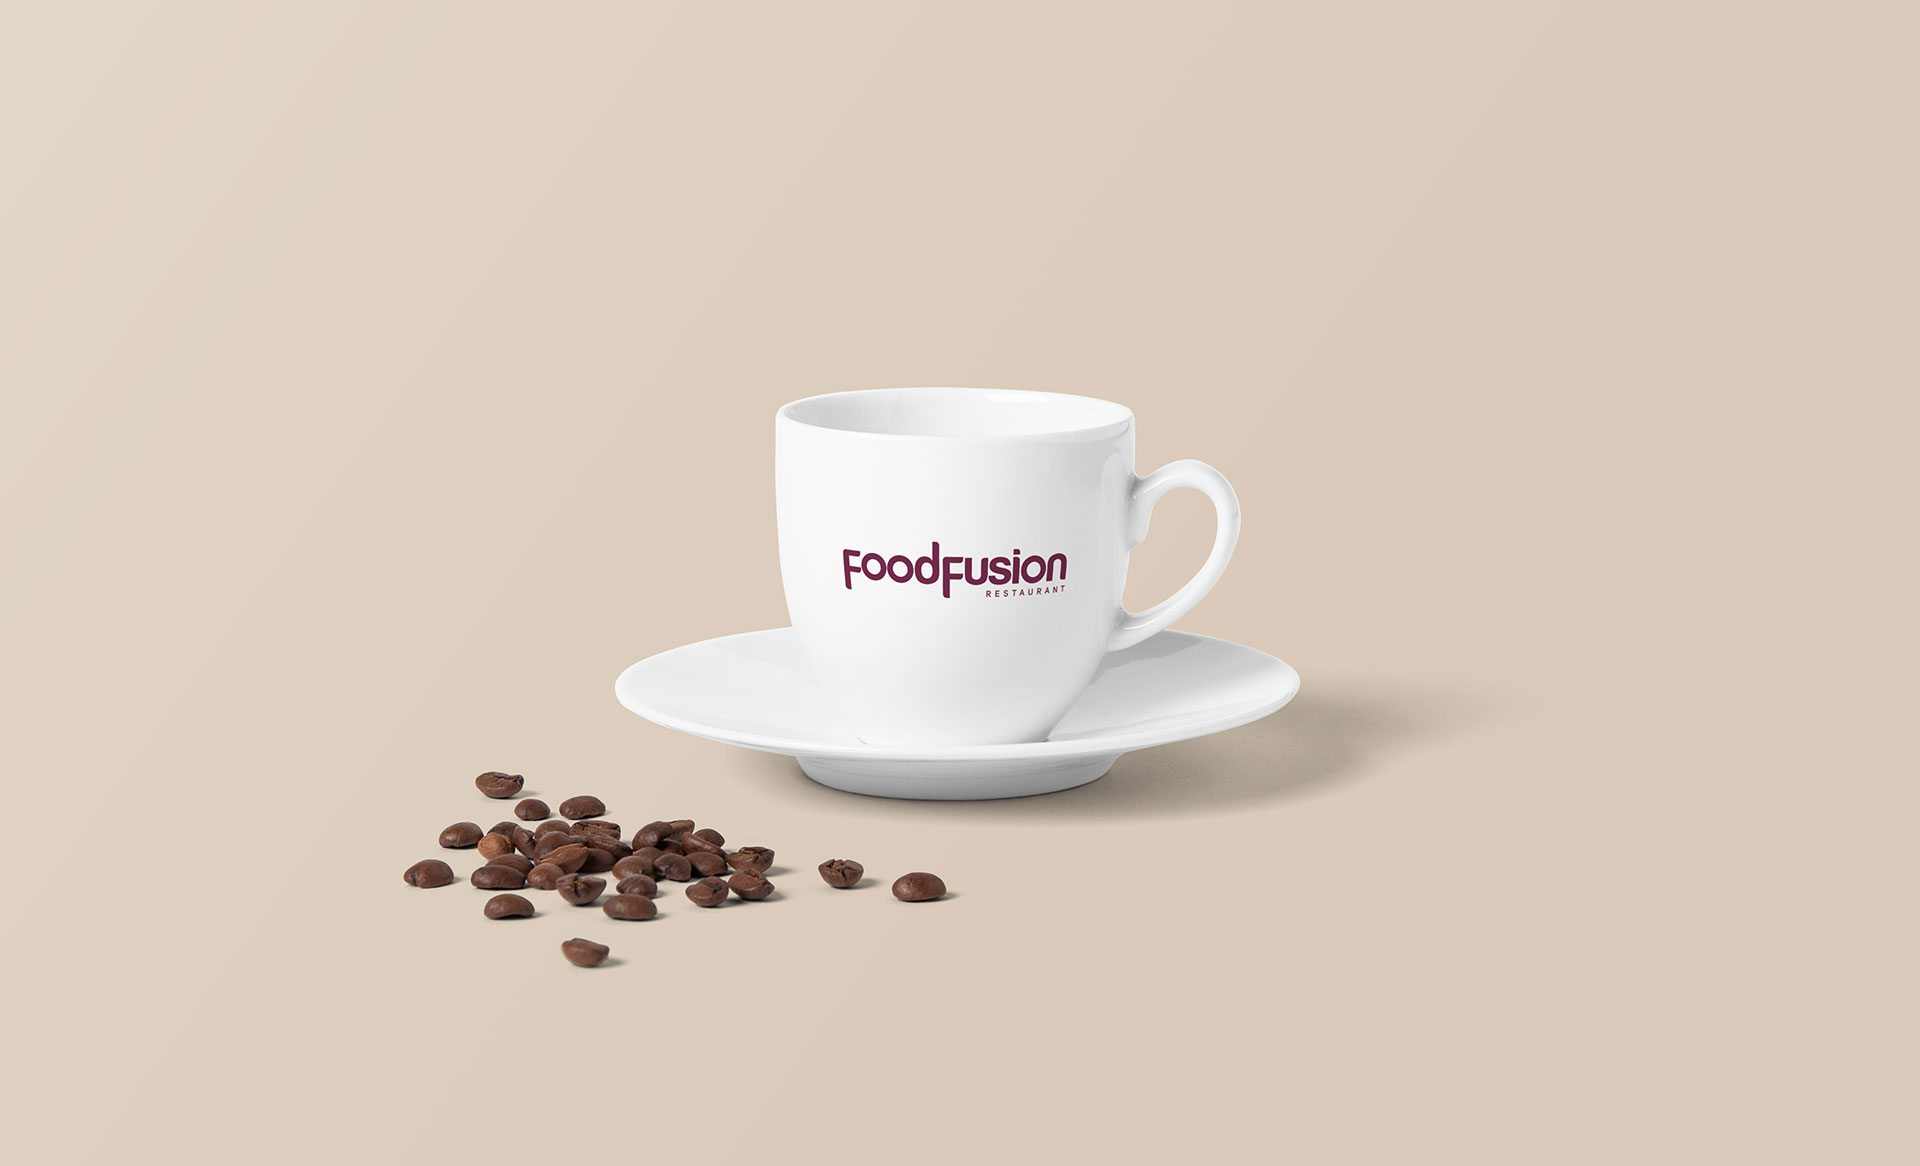 FoodFusion Restaurant Logo on cofee cup